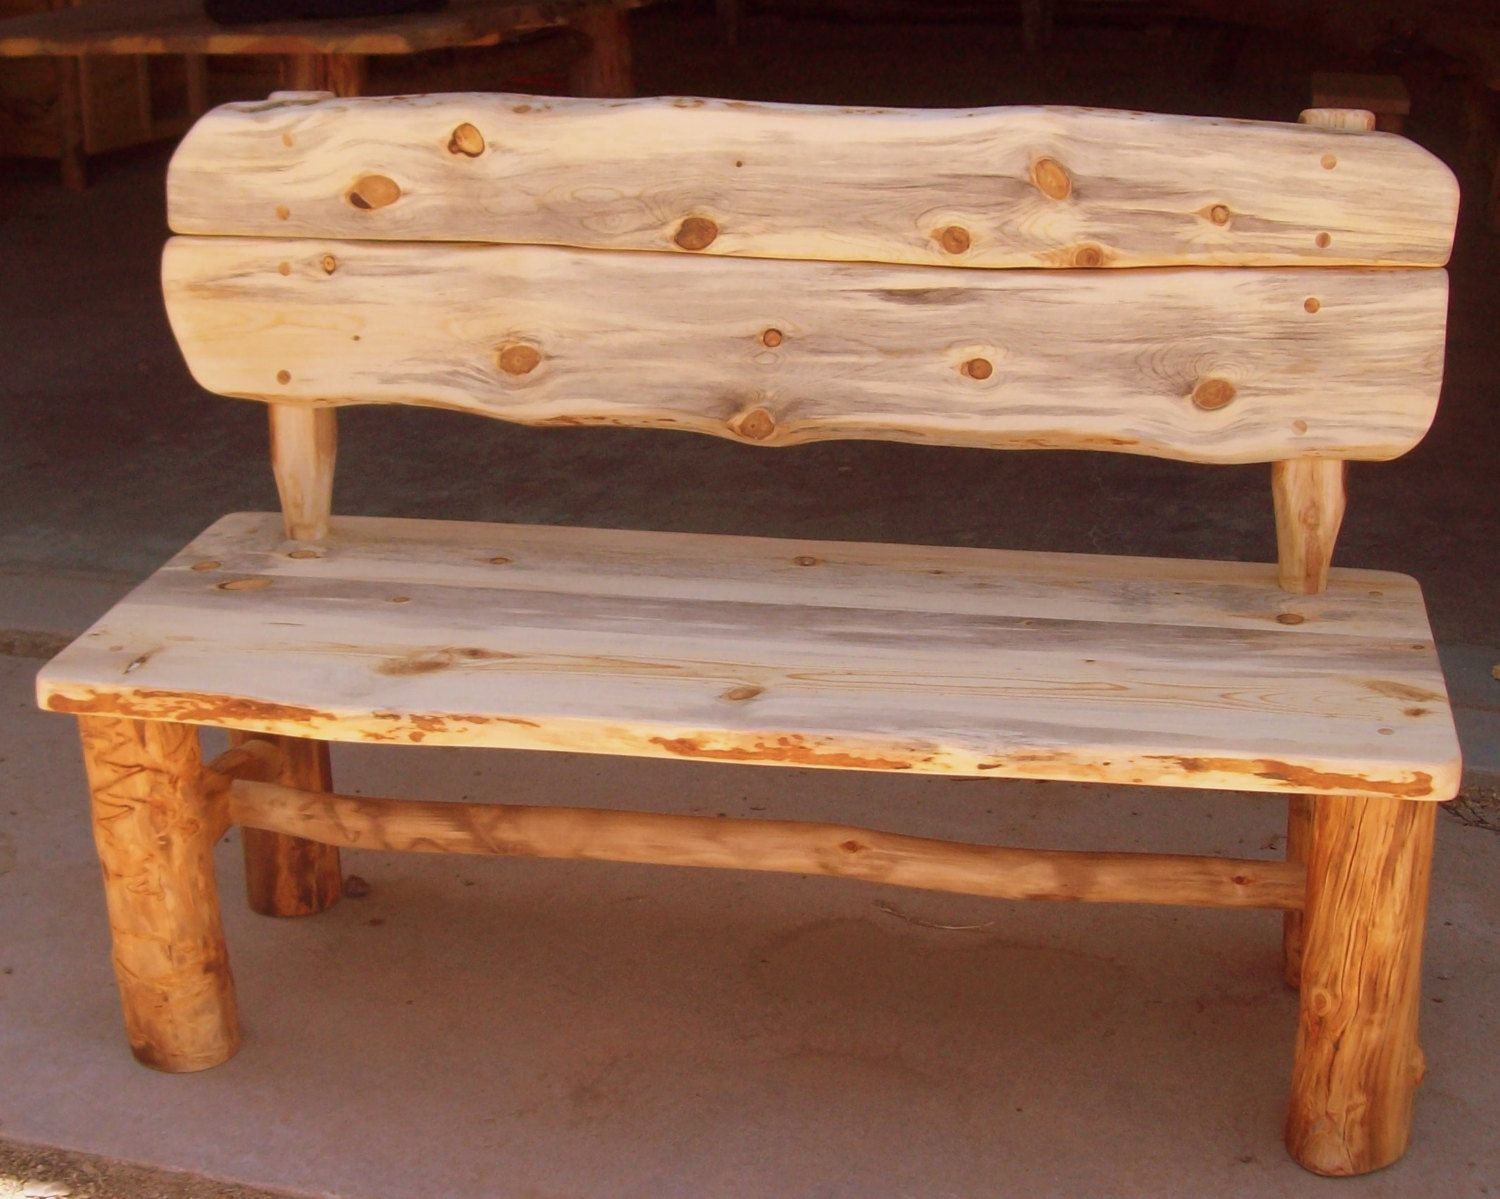 Chainsaw Furniture | ... furniture wood on etsy a global ...